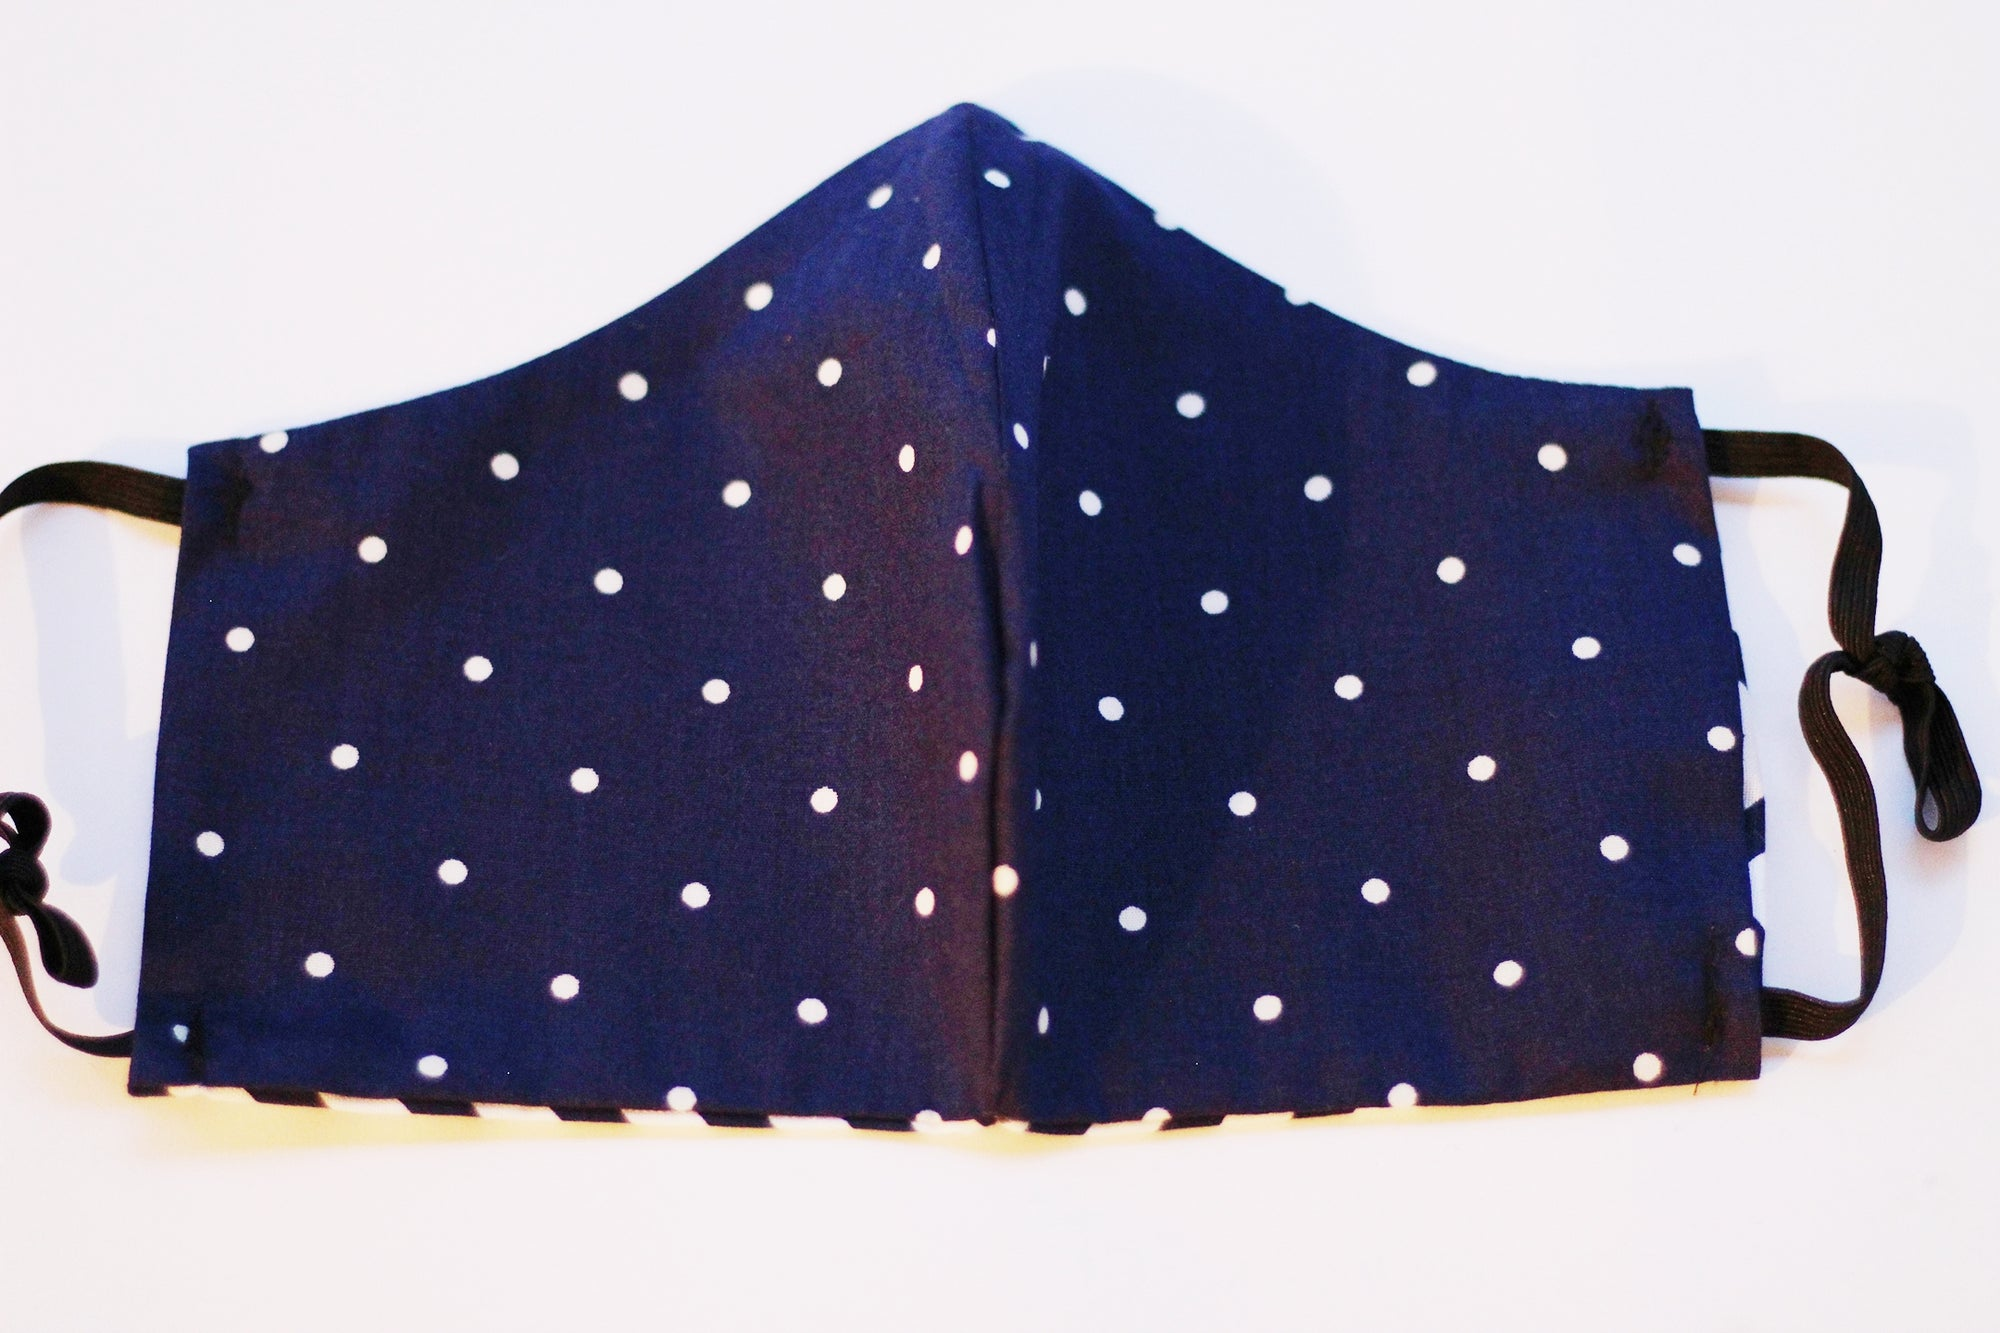 Face Mask - Navy Blue/White Polka Dot Print